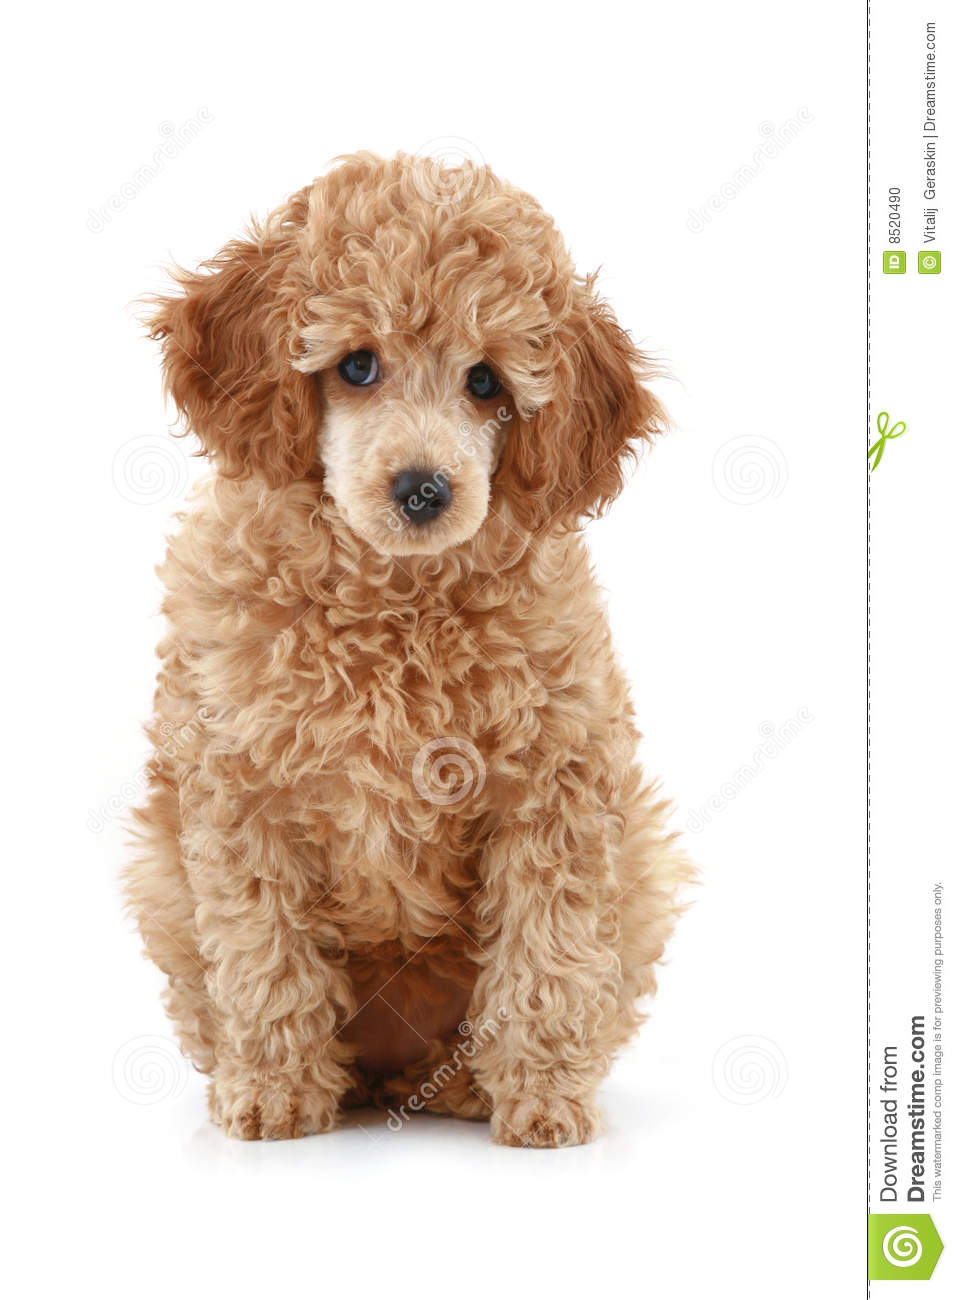 Apricot poodle puppy series